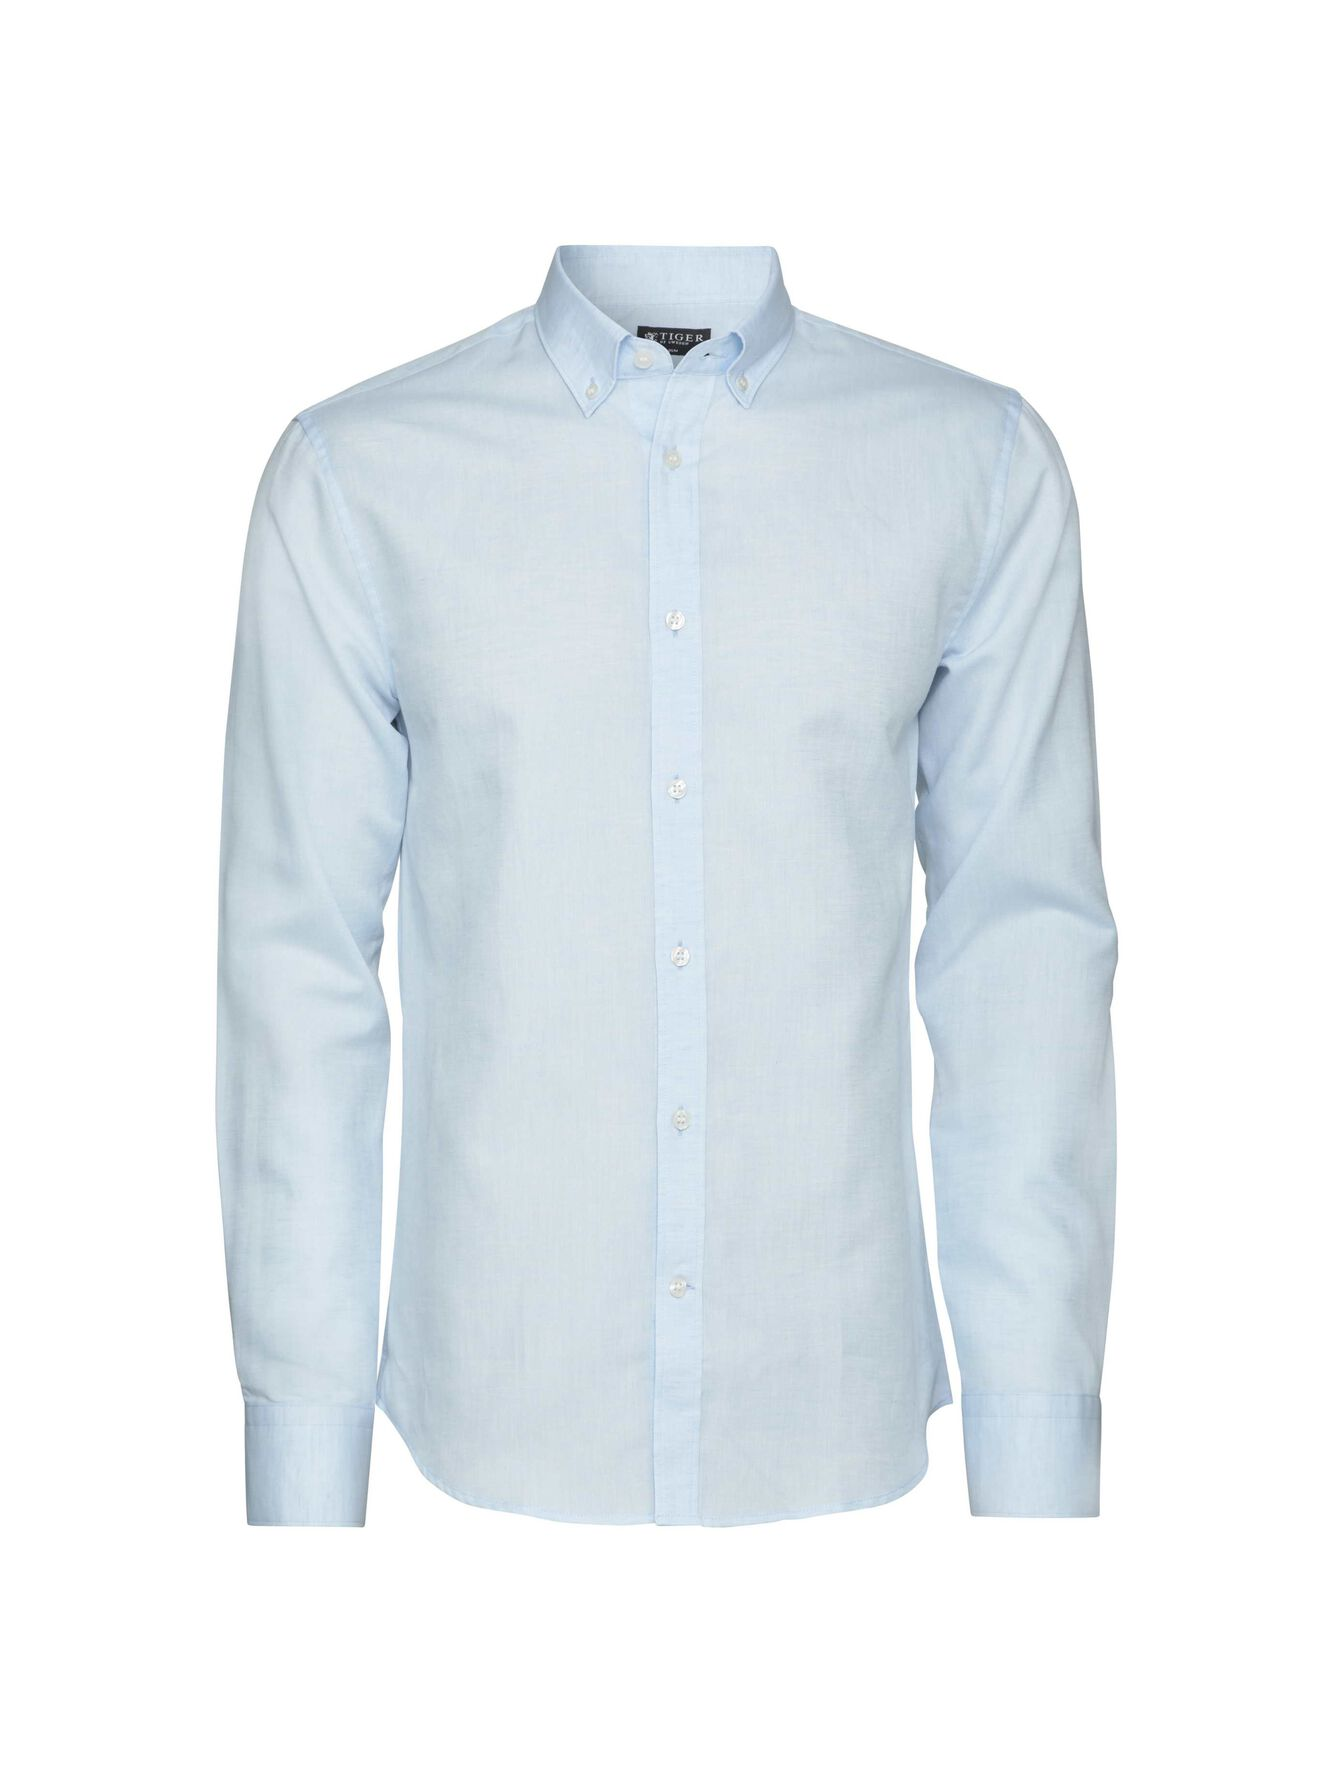 Donald Shirt in Blue Blush from Tiger of Sweden